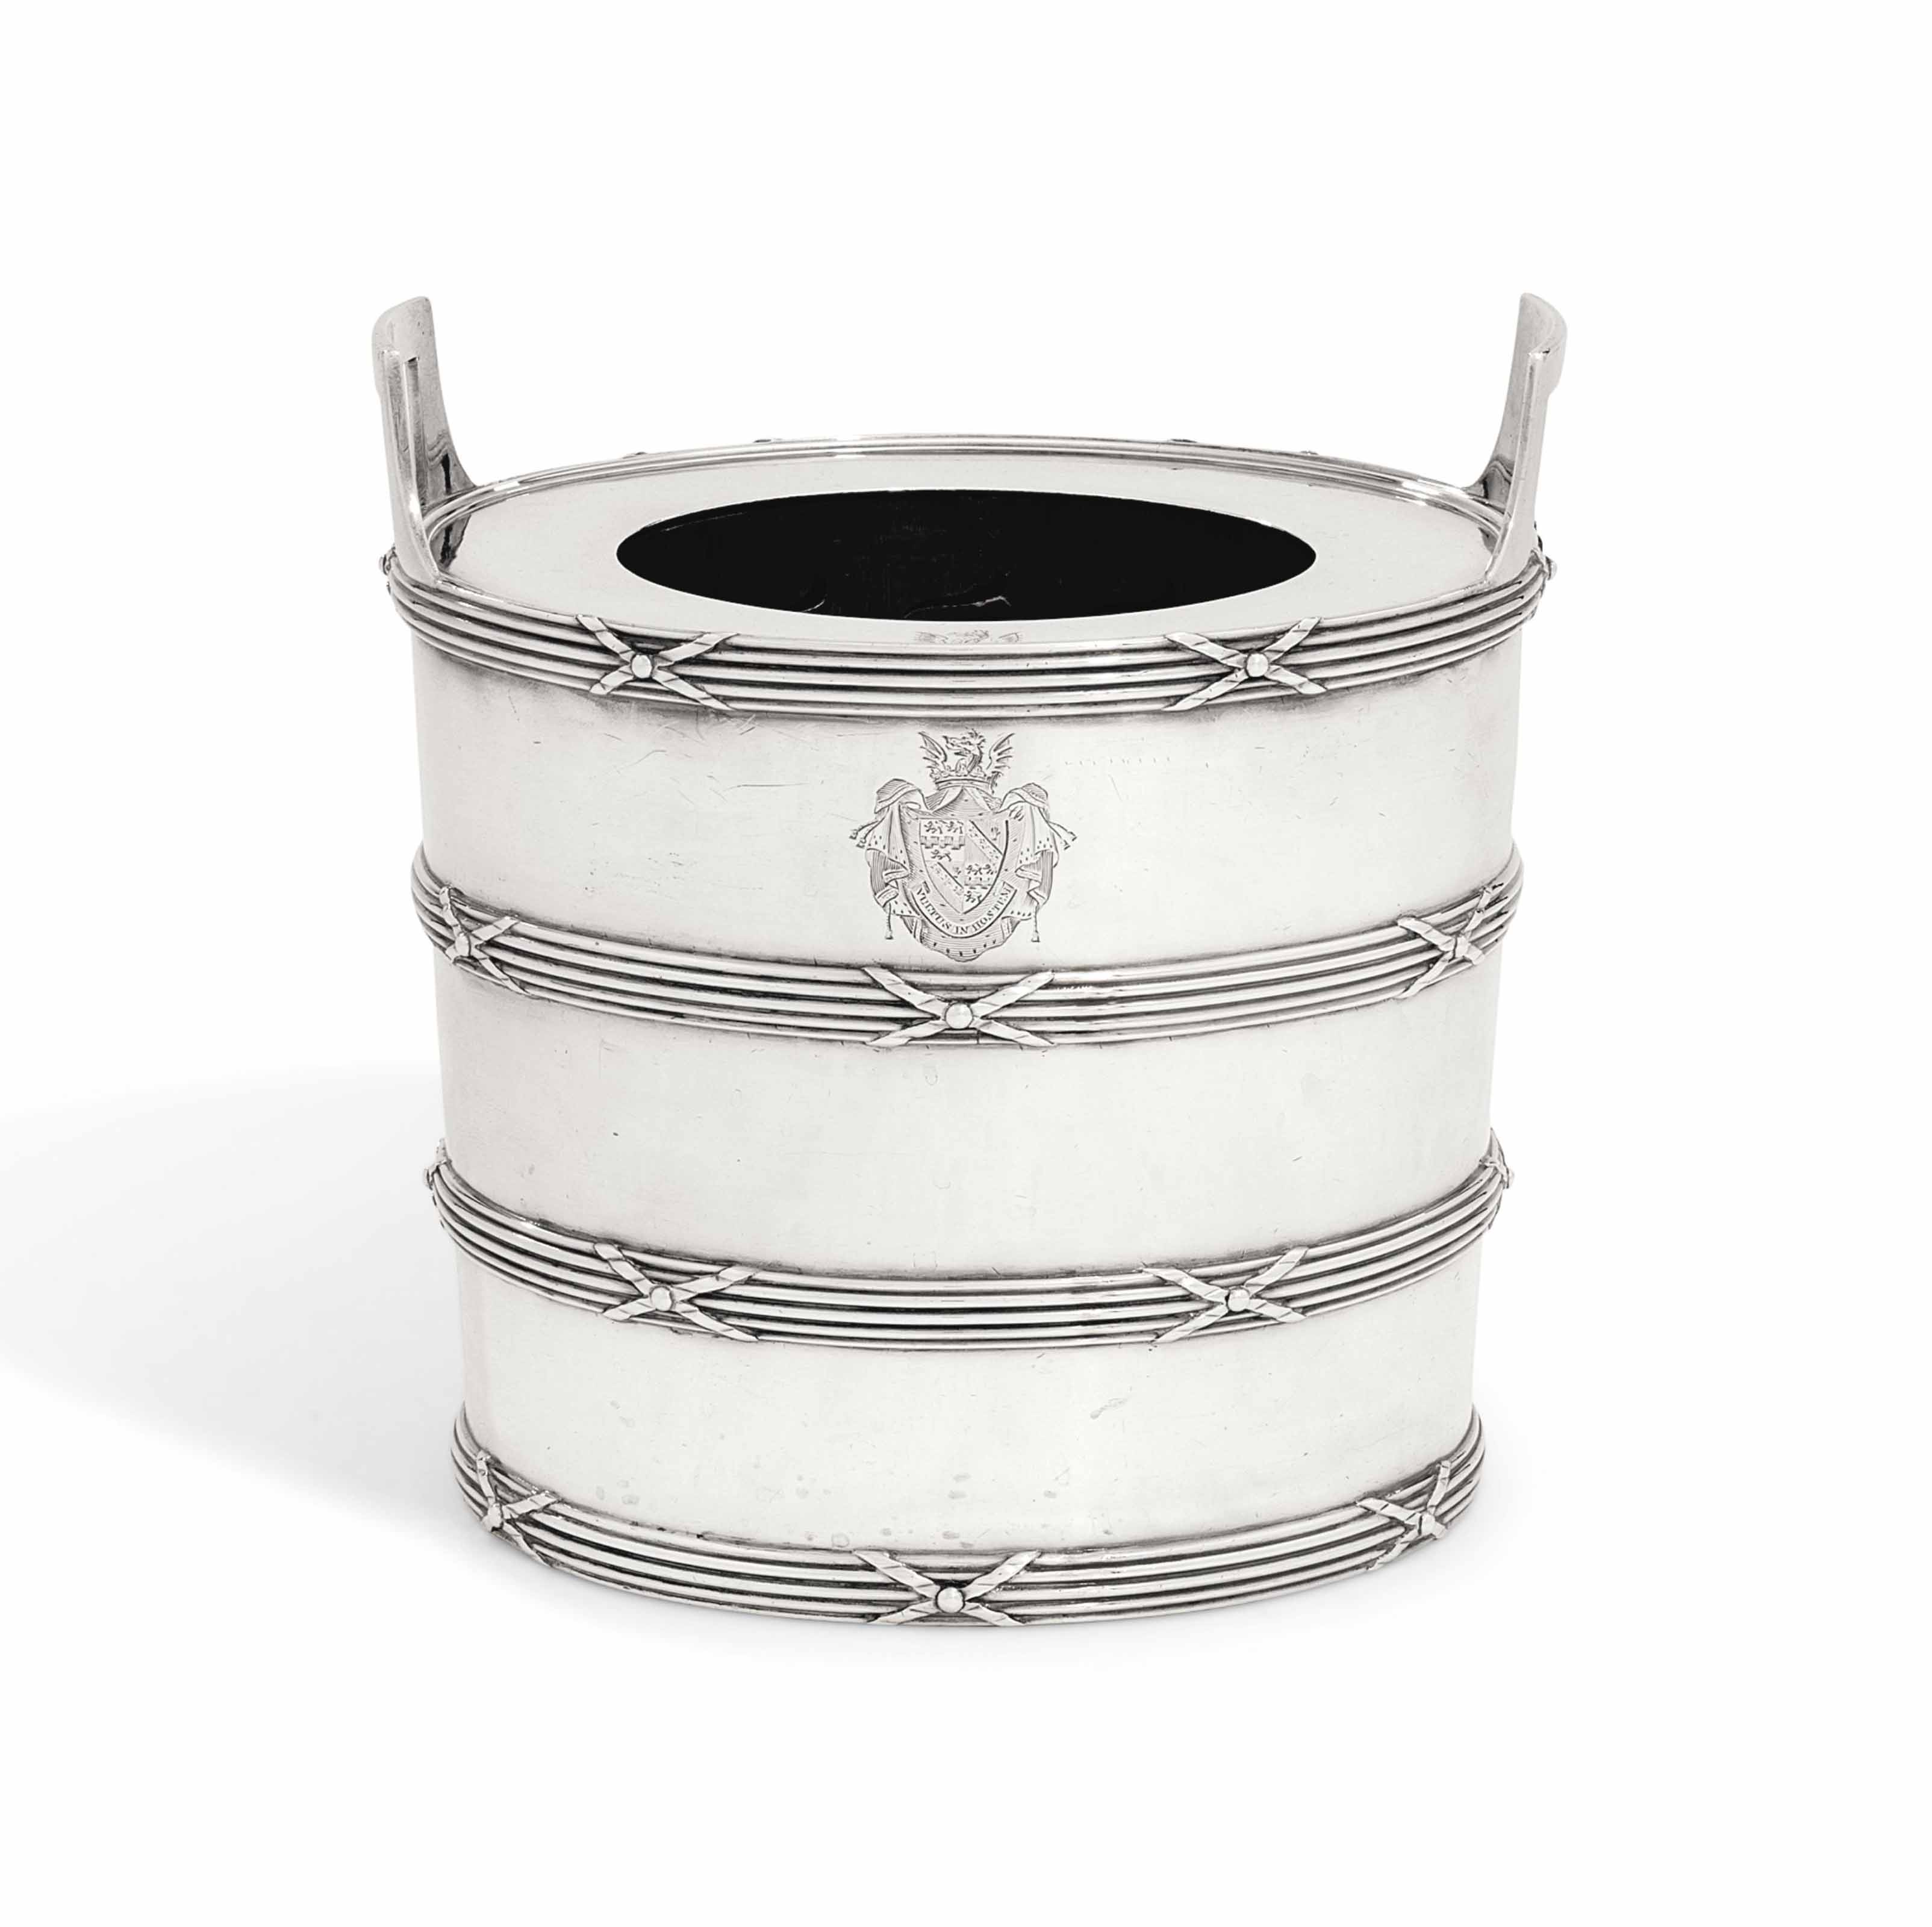 A GEORGE III SILVER WINE-COOLER, COLLAR AND LINER